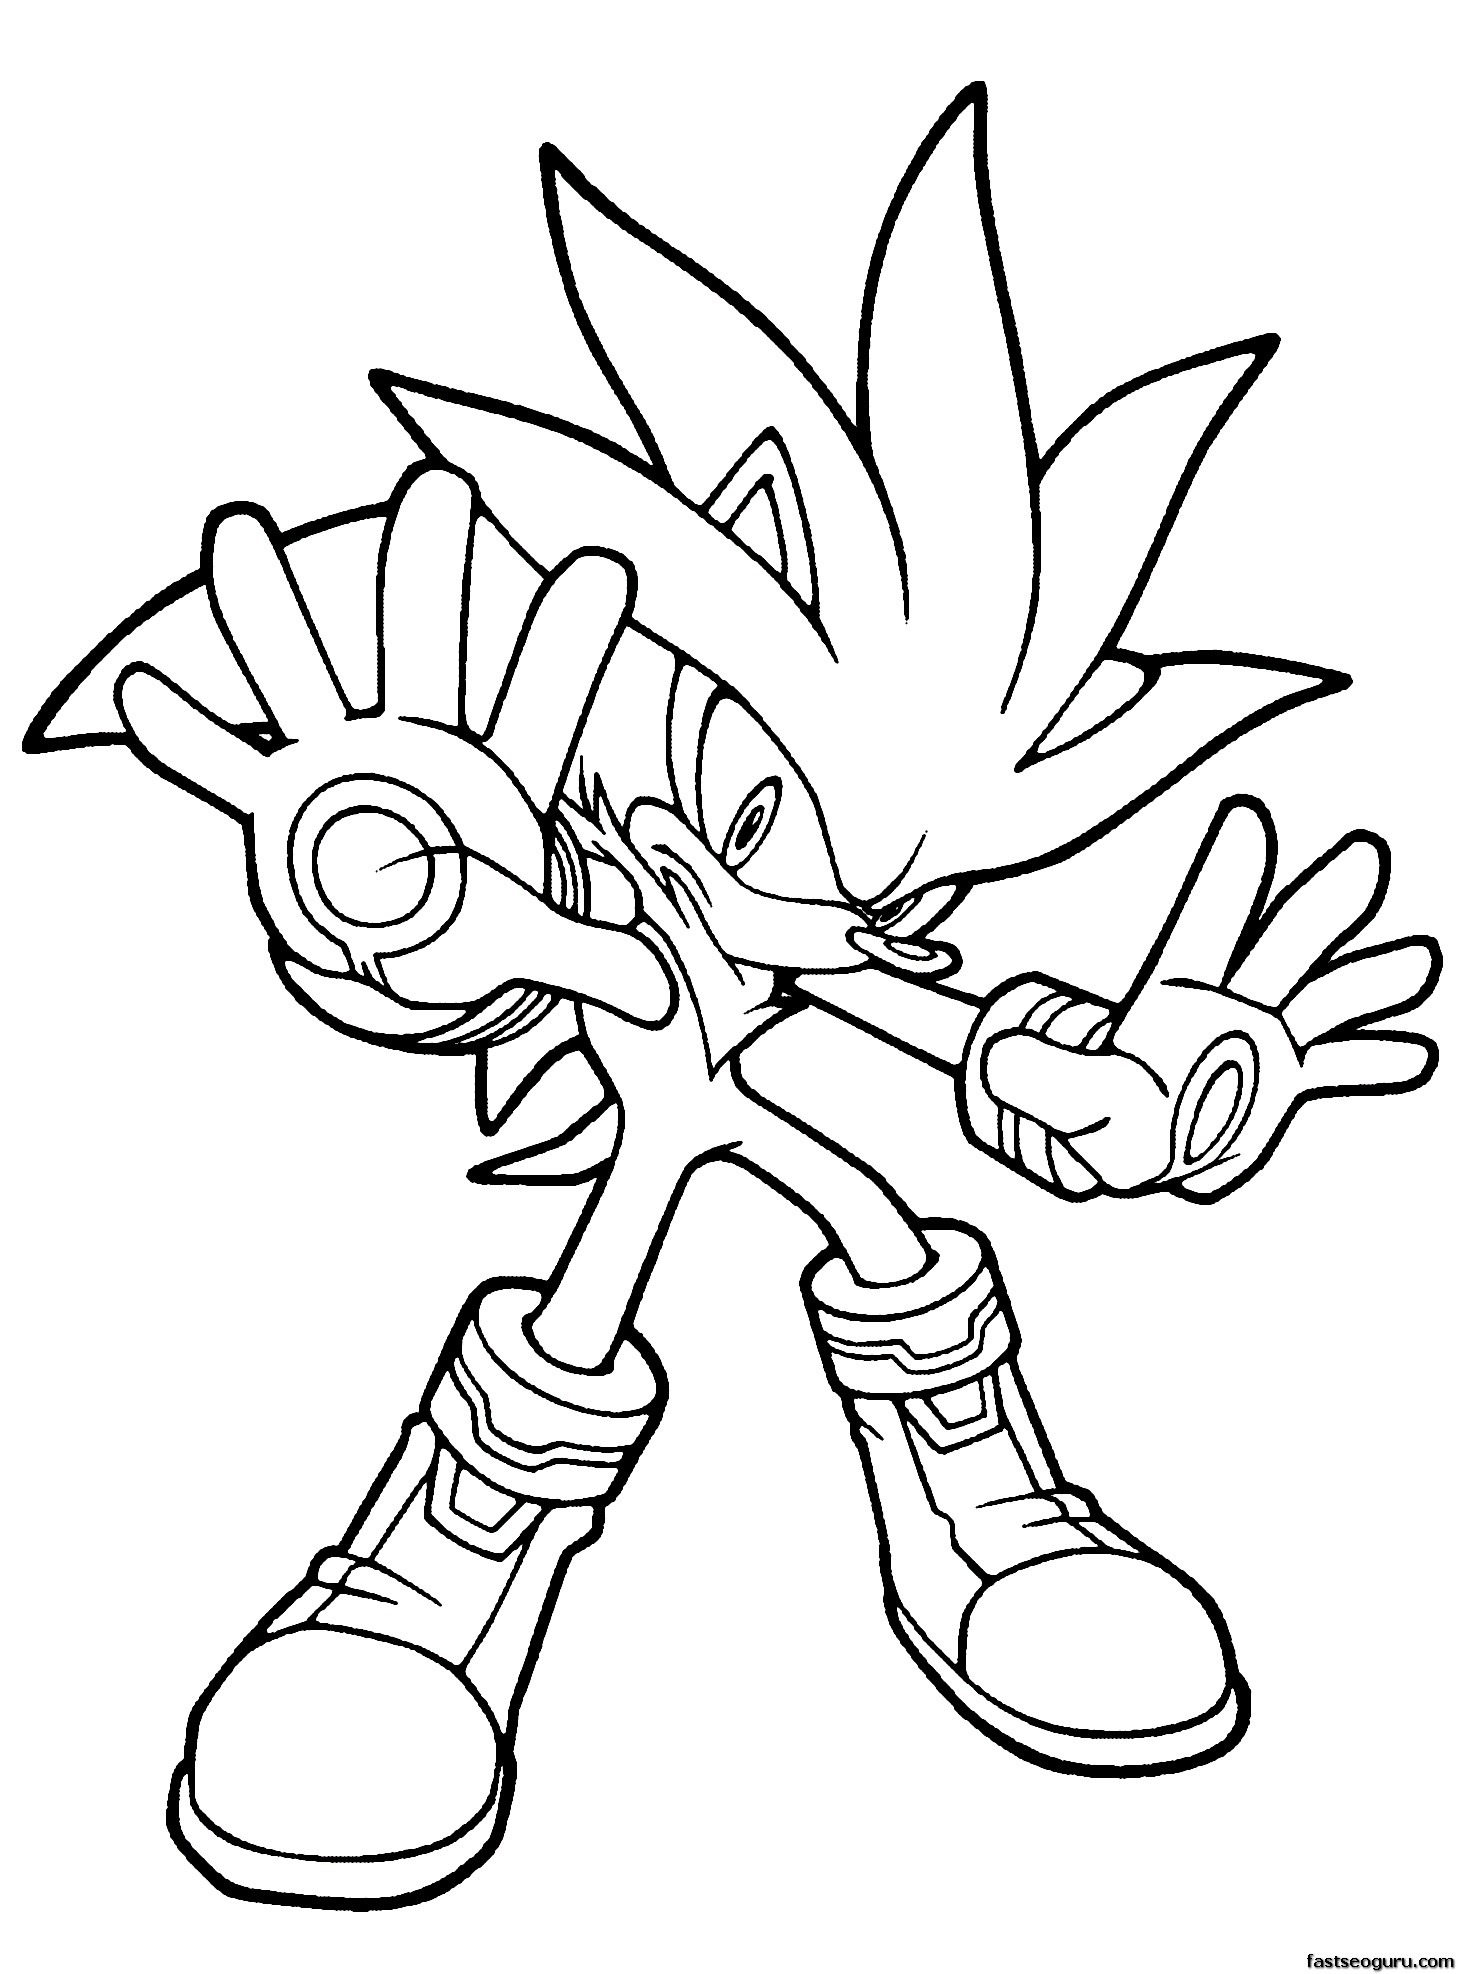 Cute Sonic Best Hedgehog Coloring Pages Free Printable Home Of